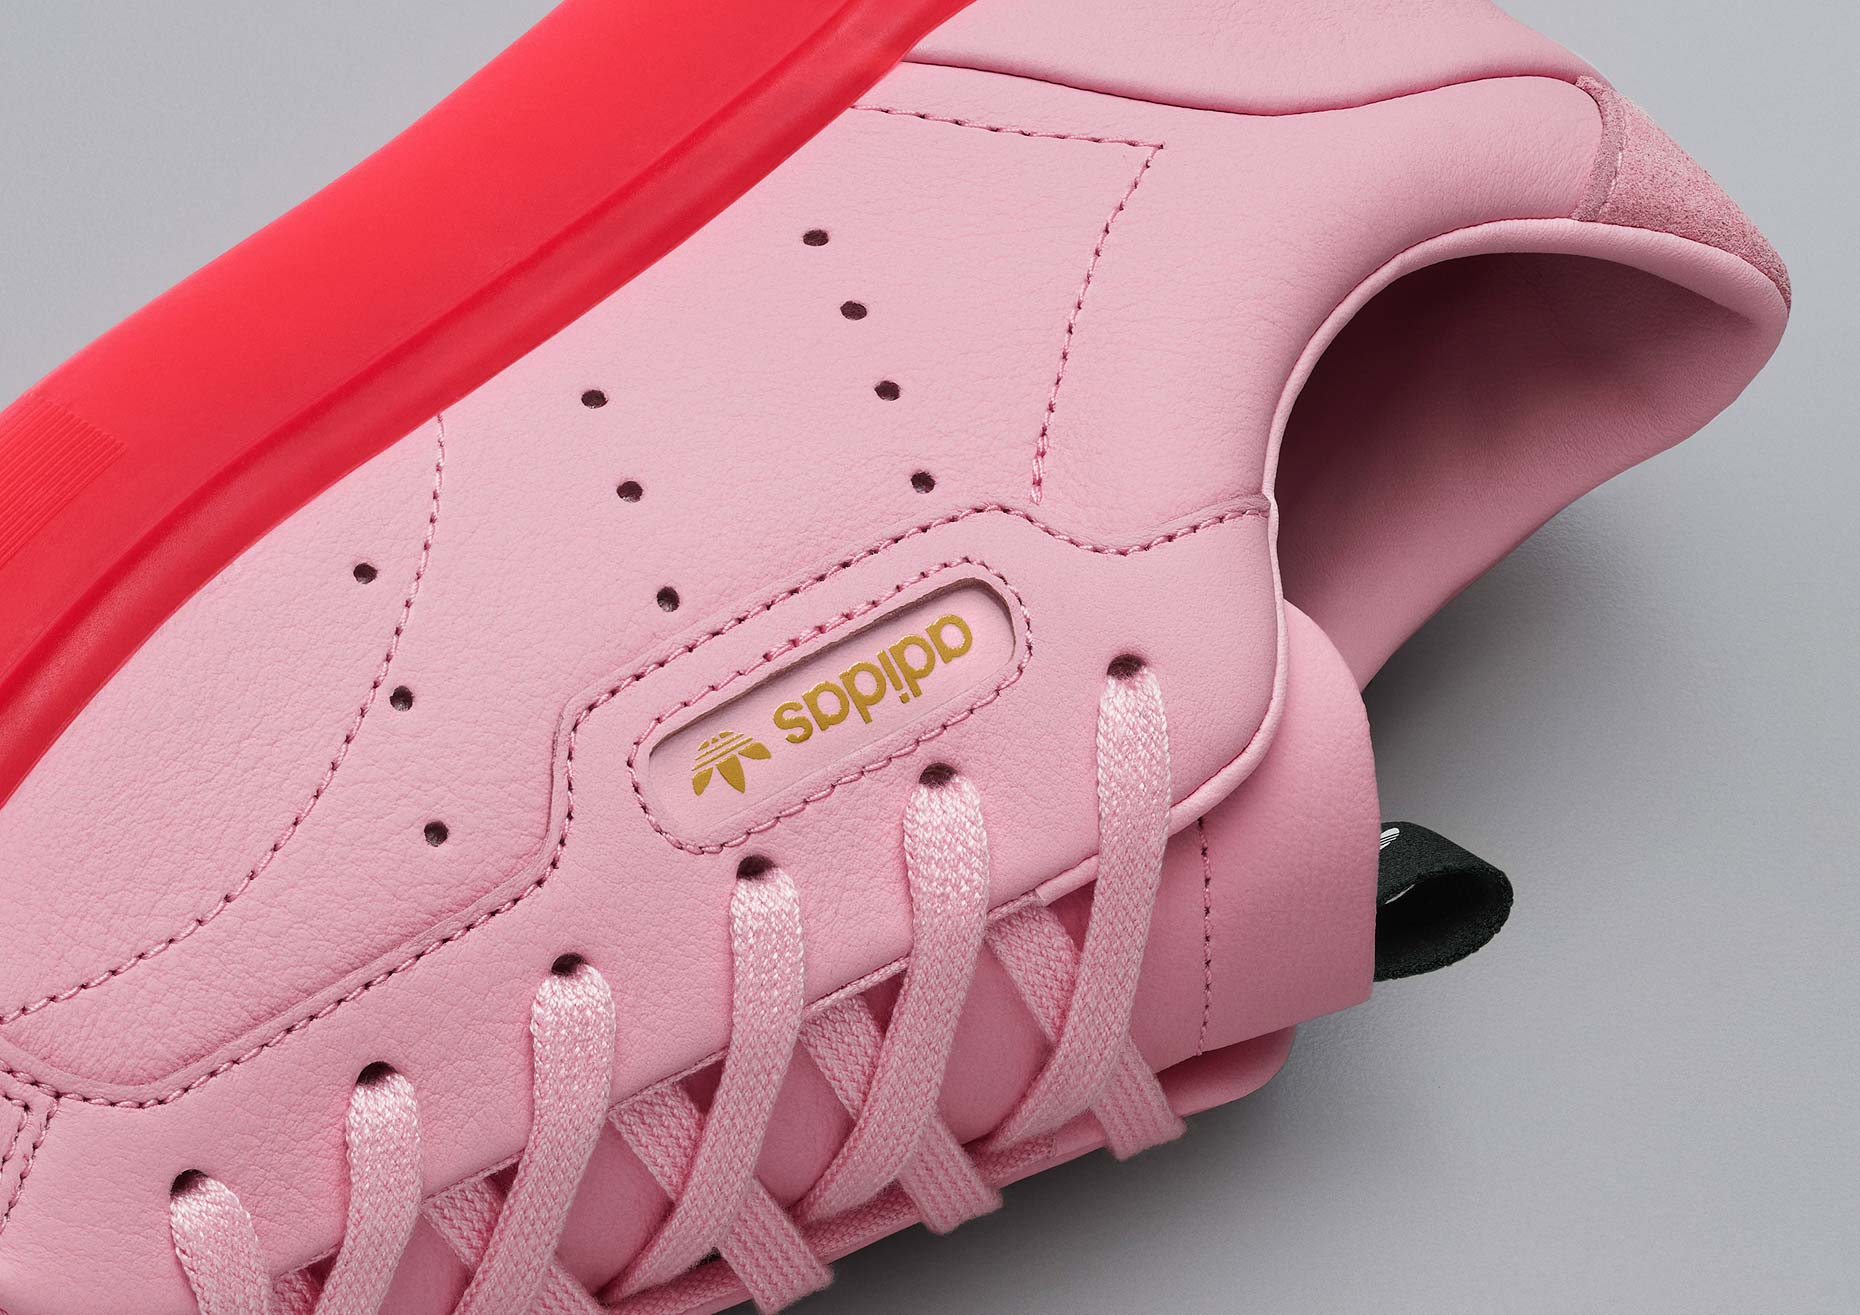 adidasOriginals_SS19_Sleek_SleekW_BD7475_01_Detail_COMP_c